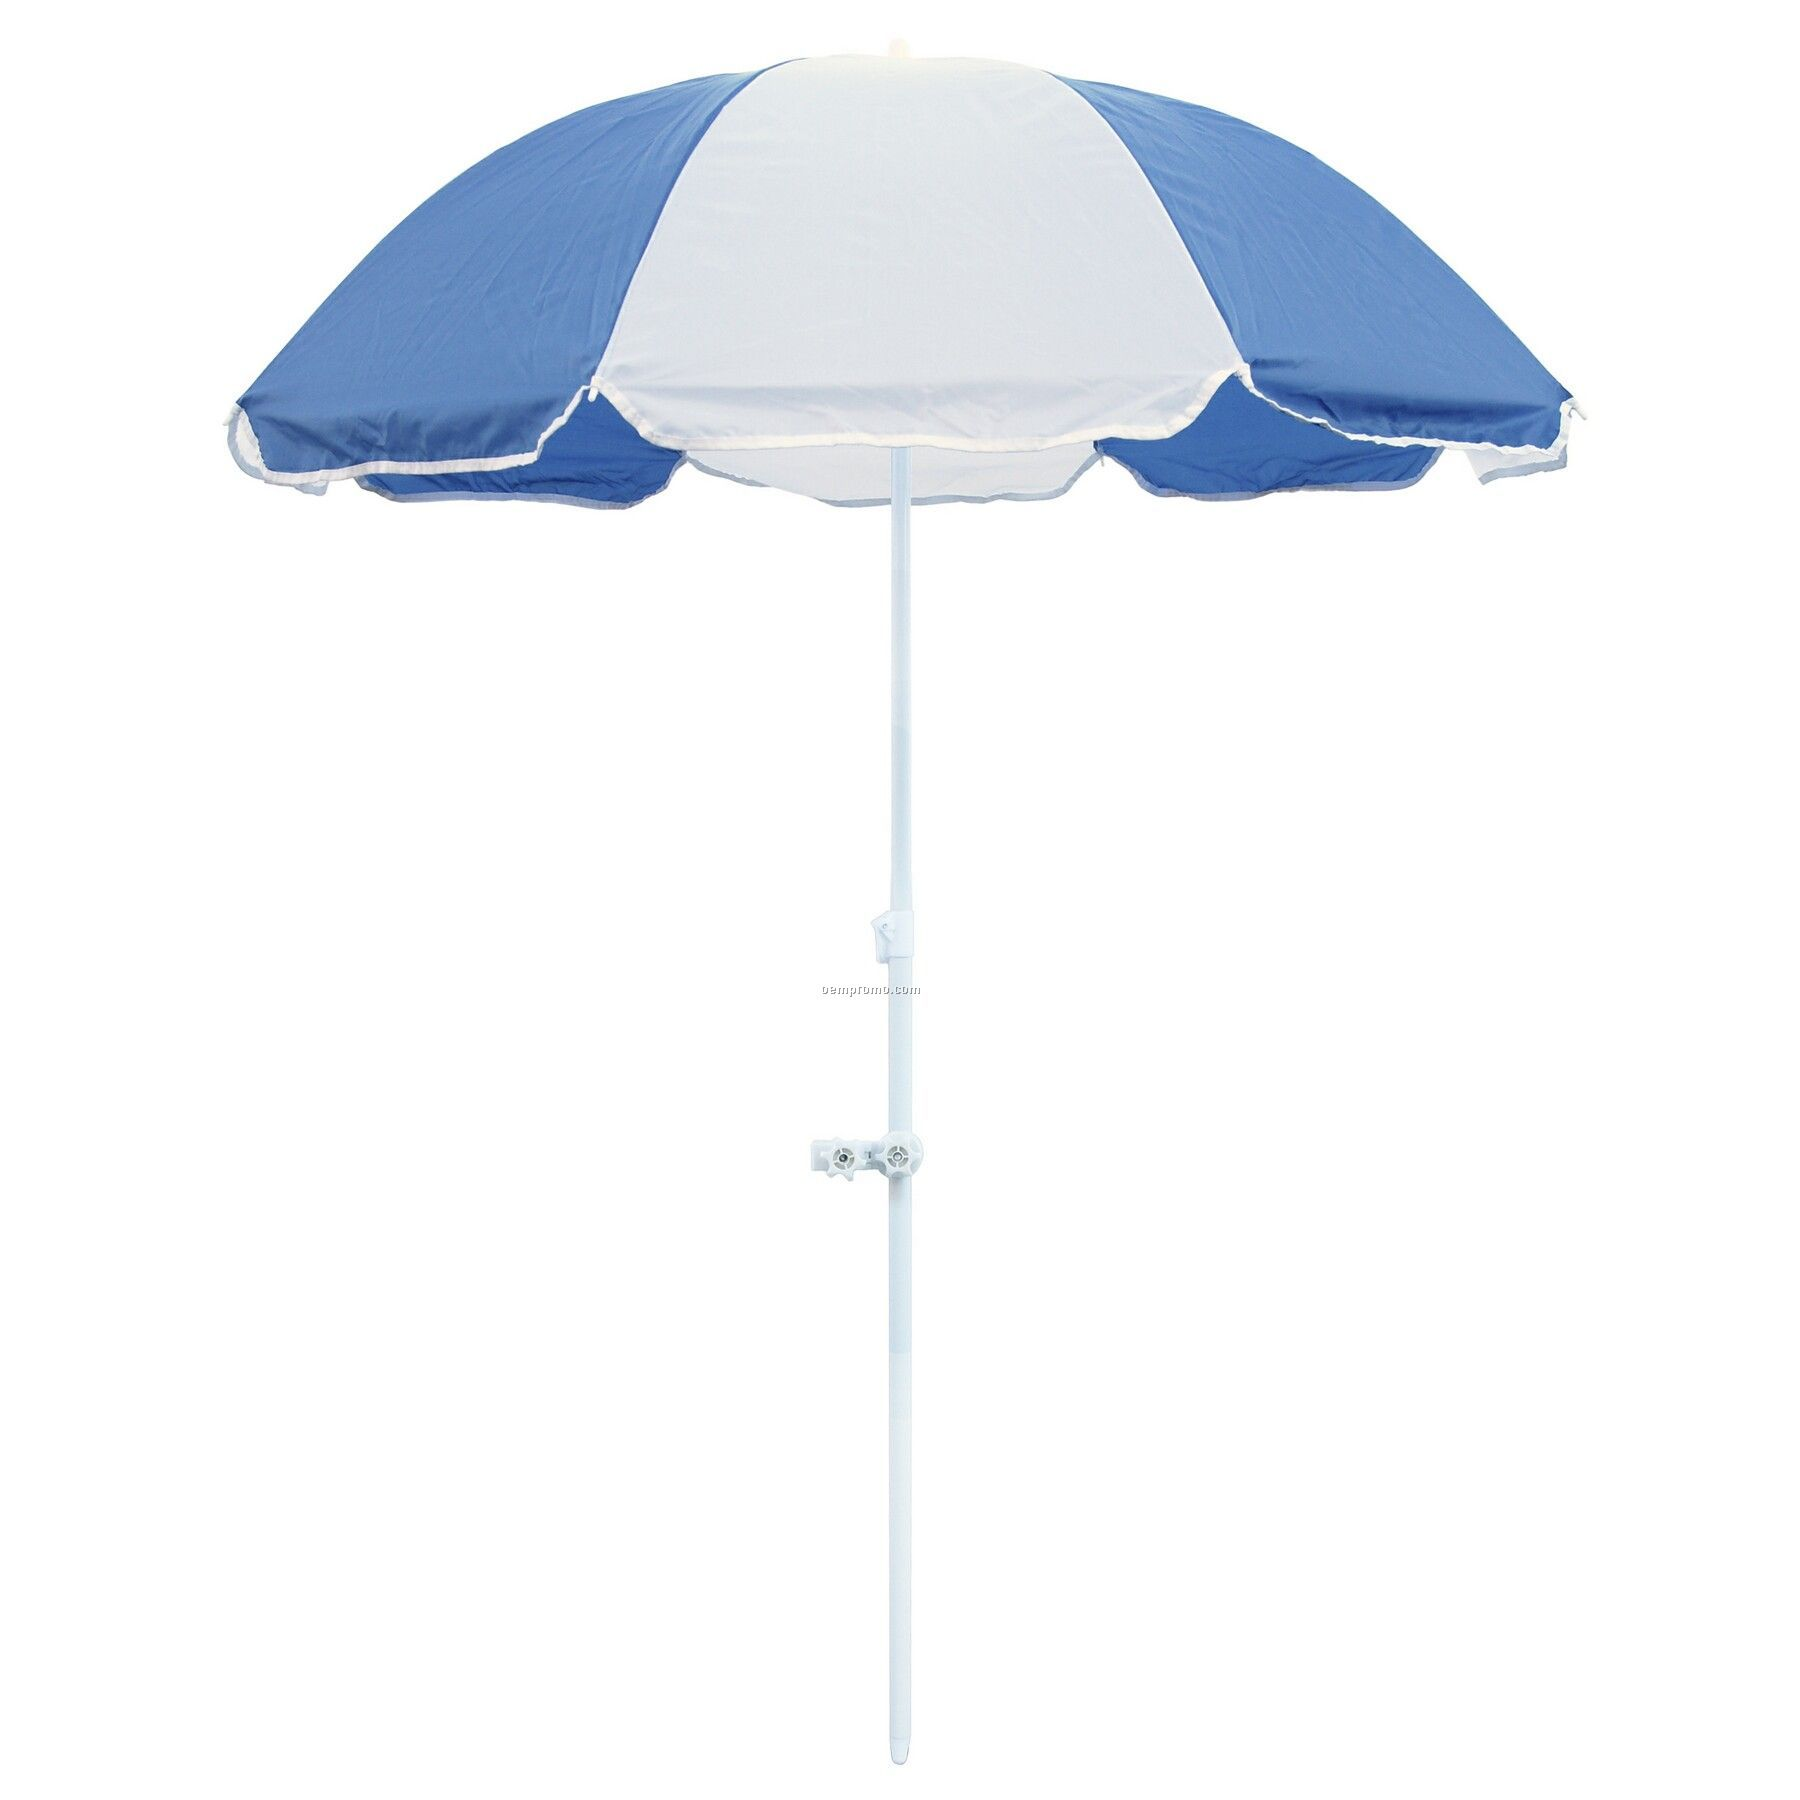 chair with umbrella attached grey office uk umbrellas china wholesale page 56